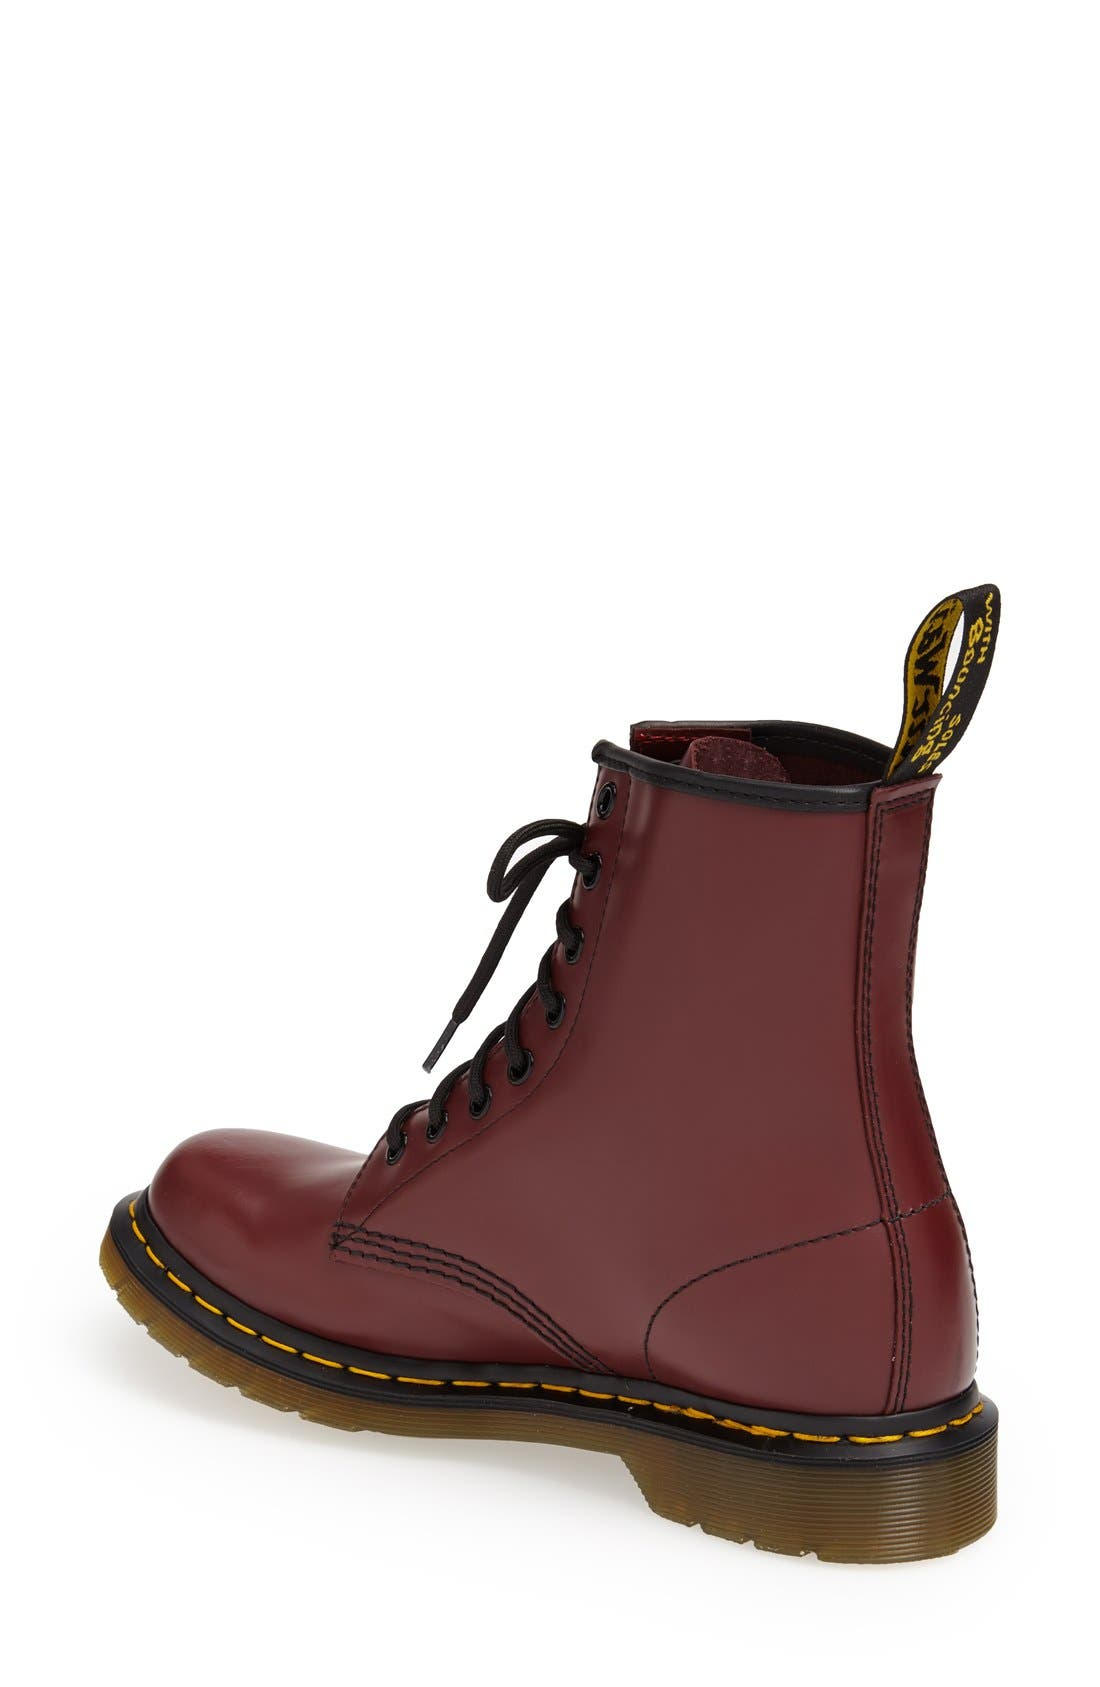 '1460 W' Boot,                             Alternate thumbnail 2, color,                             CHERRY